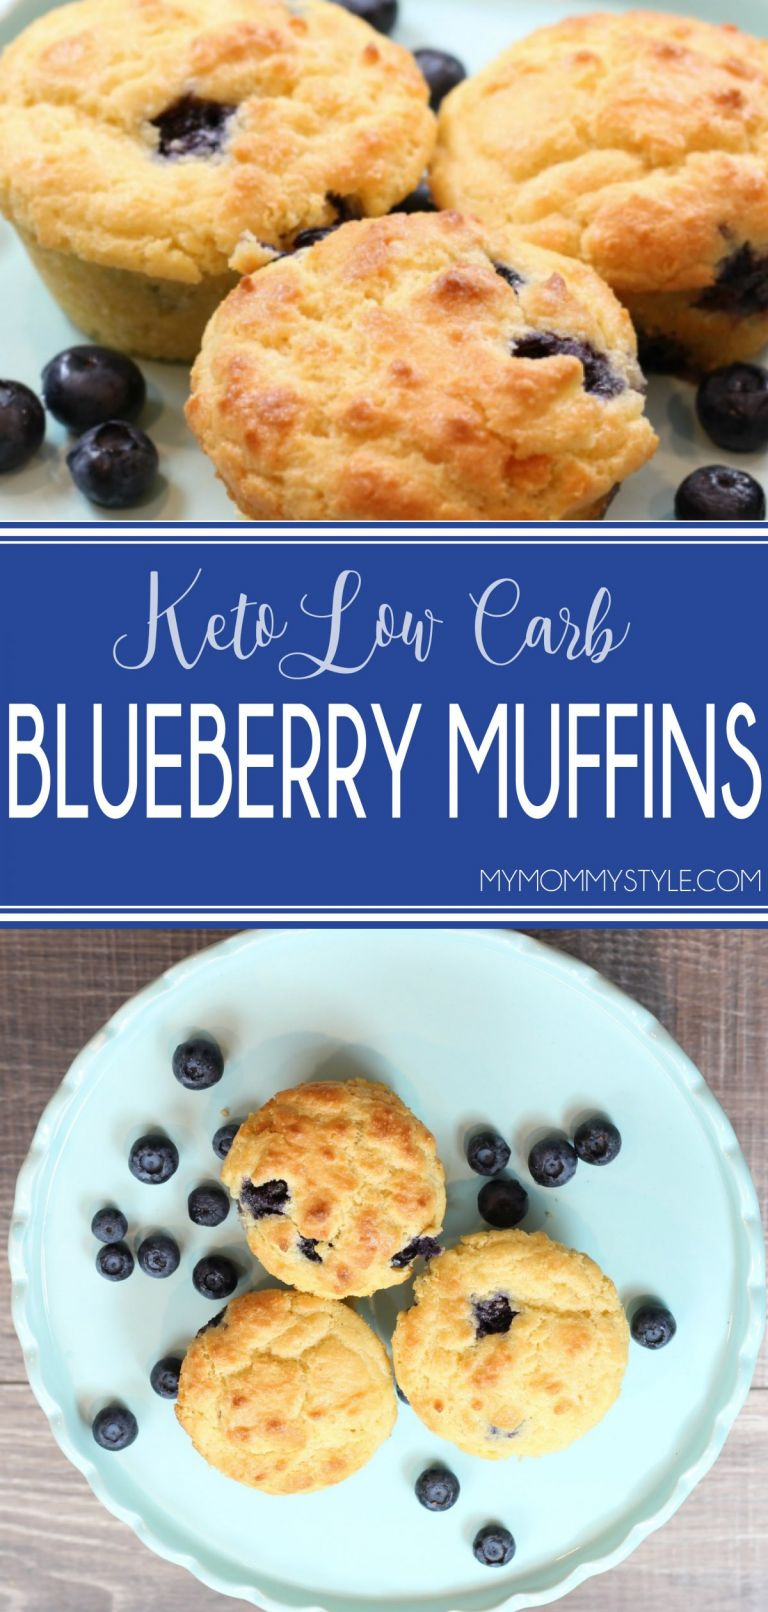 BLUEBERRY MUFFINS THAT ARE KETO AND LOW CARB